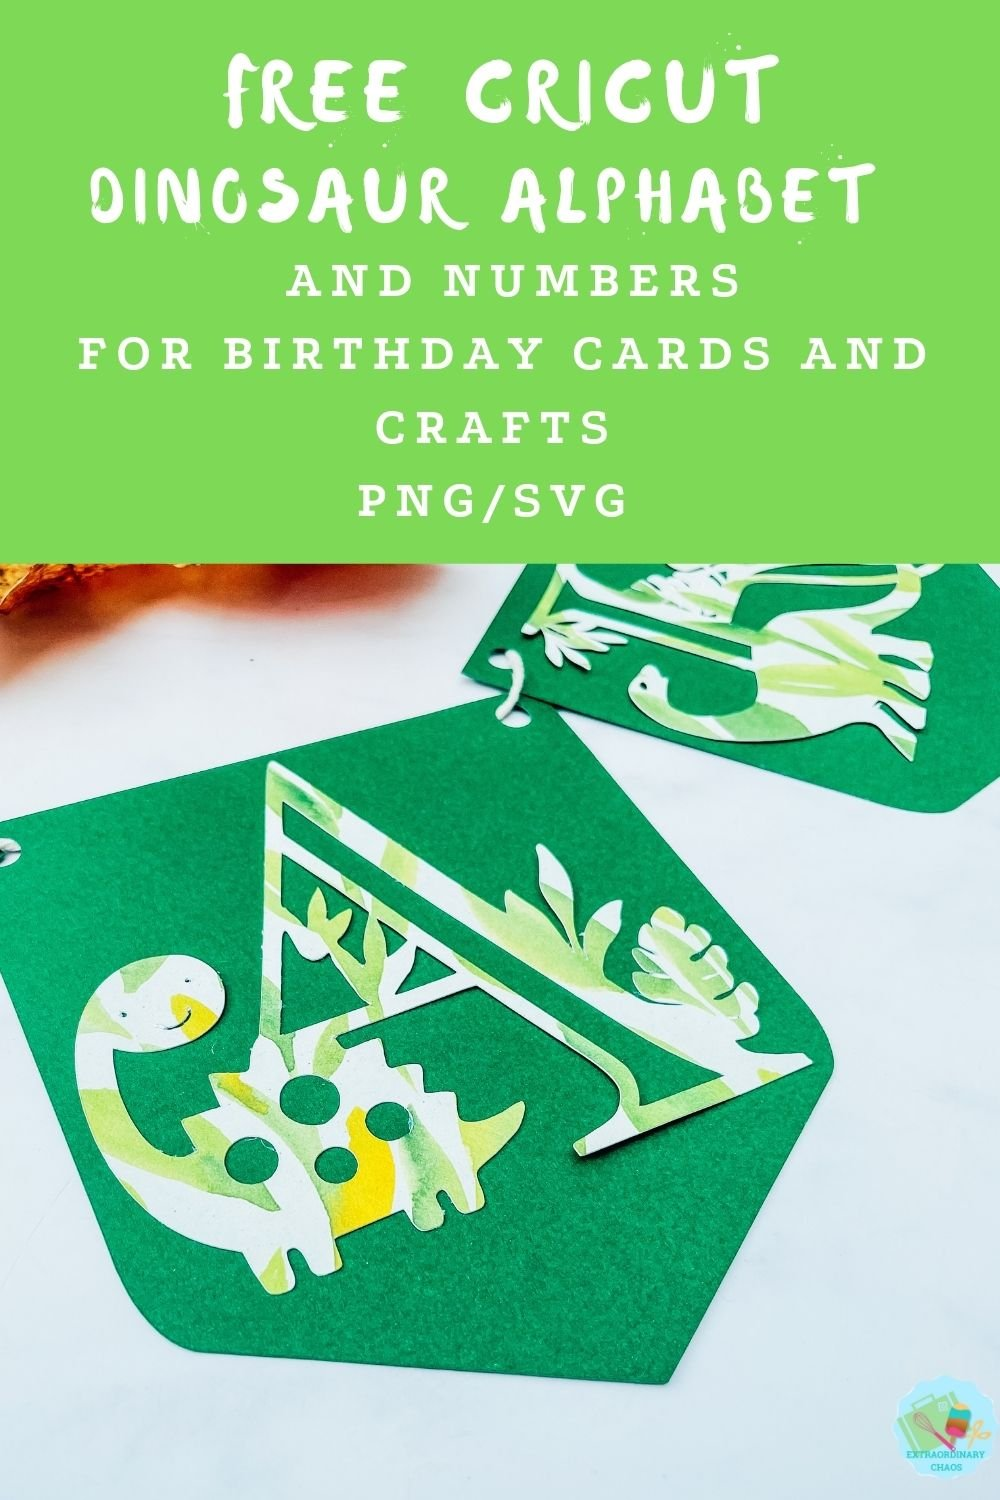 Free downloadable Dinosaur Alphabet and number template for parties, banners, card making, banners , decorations, and invitations